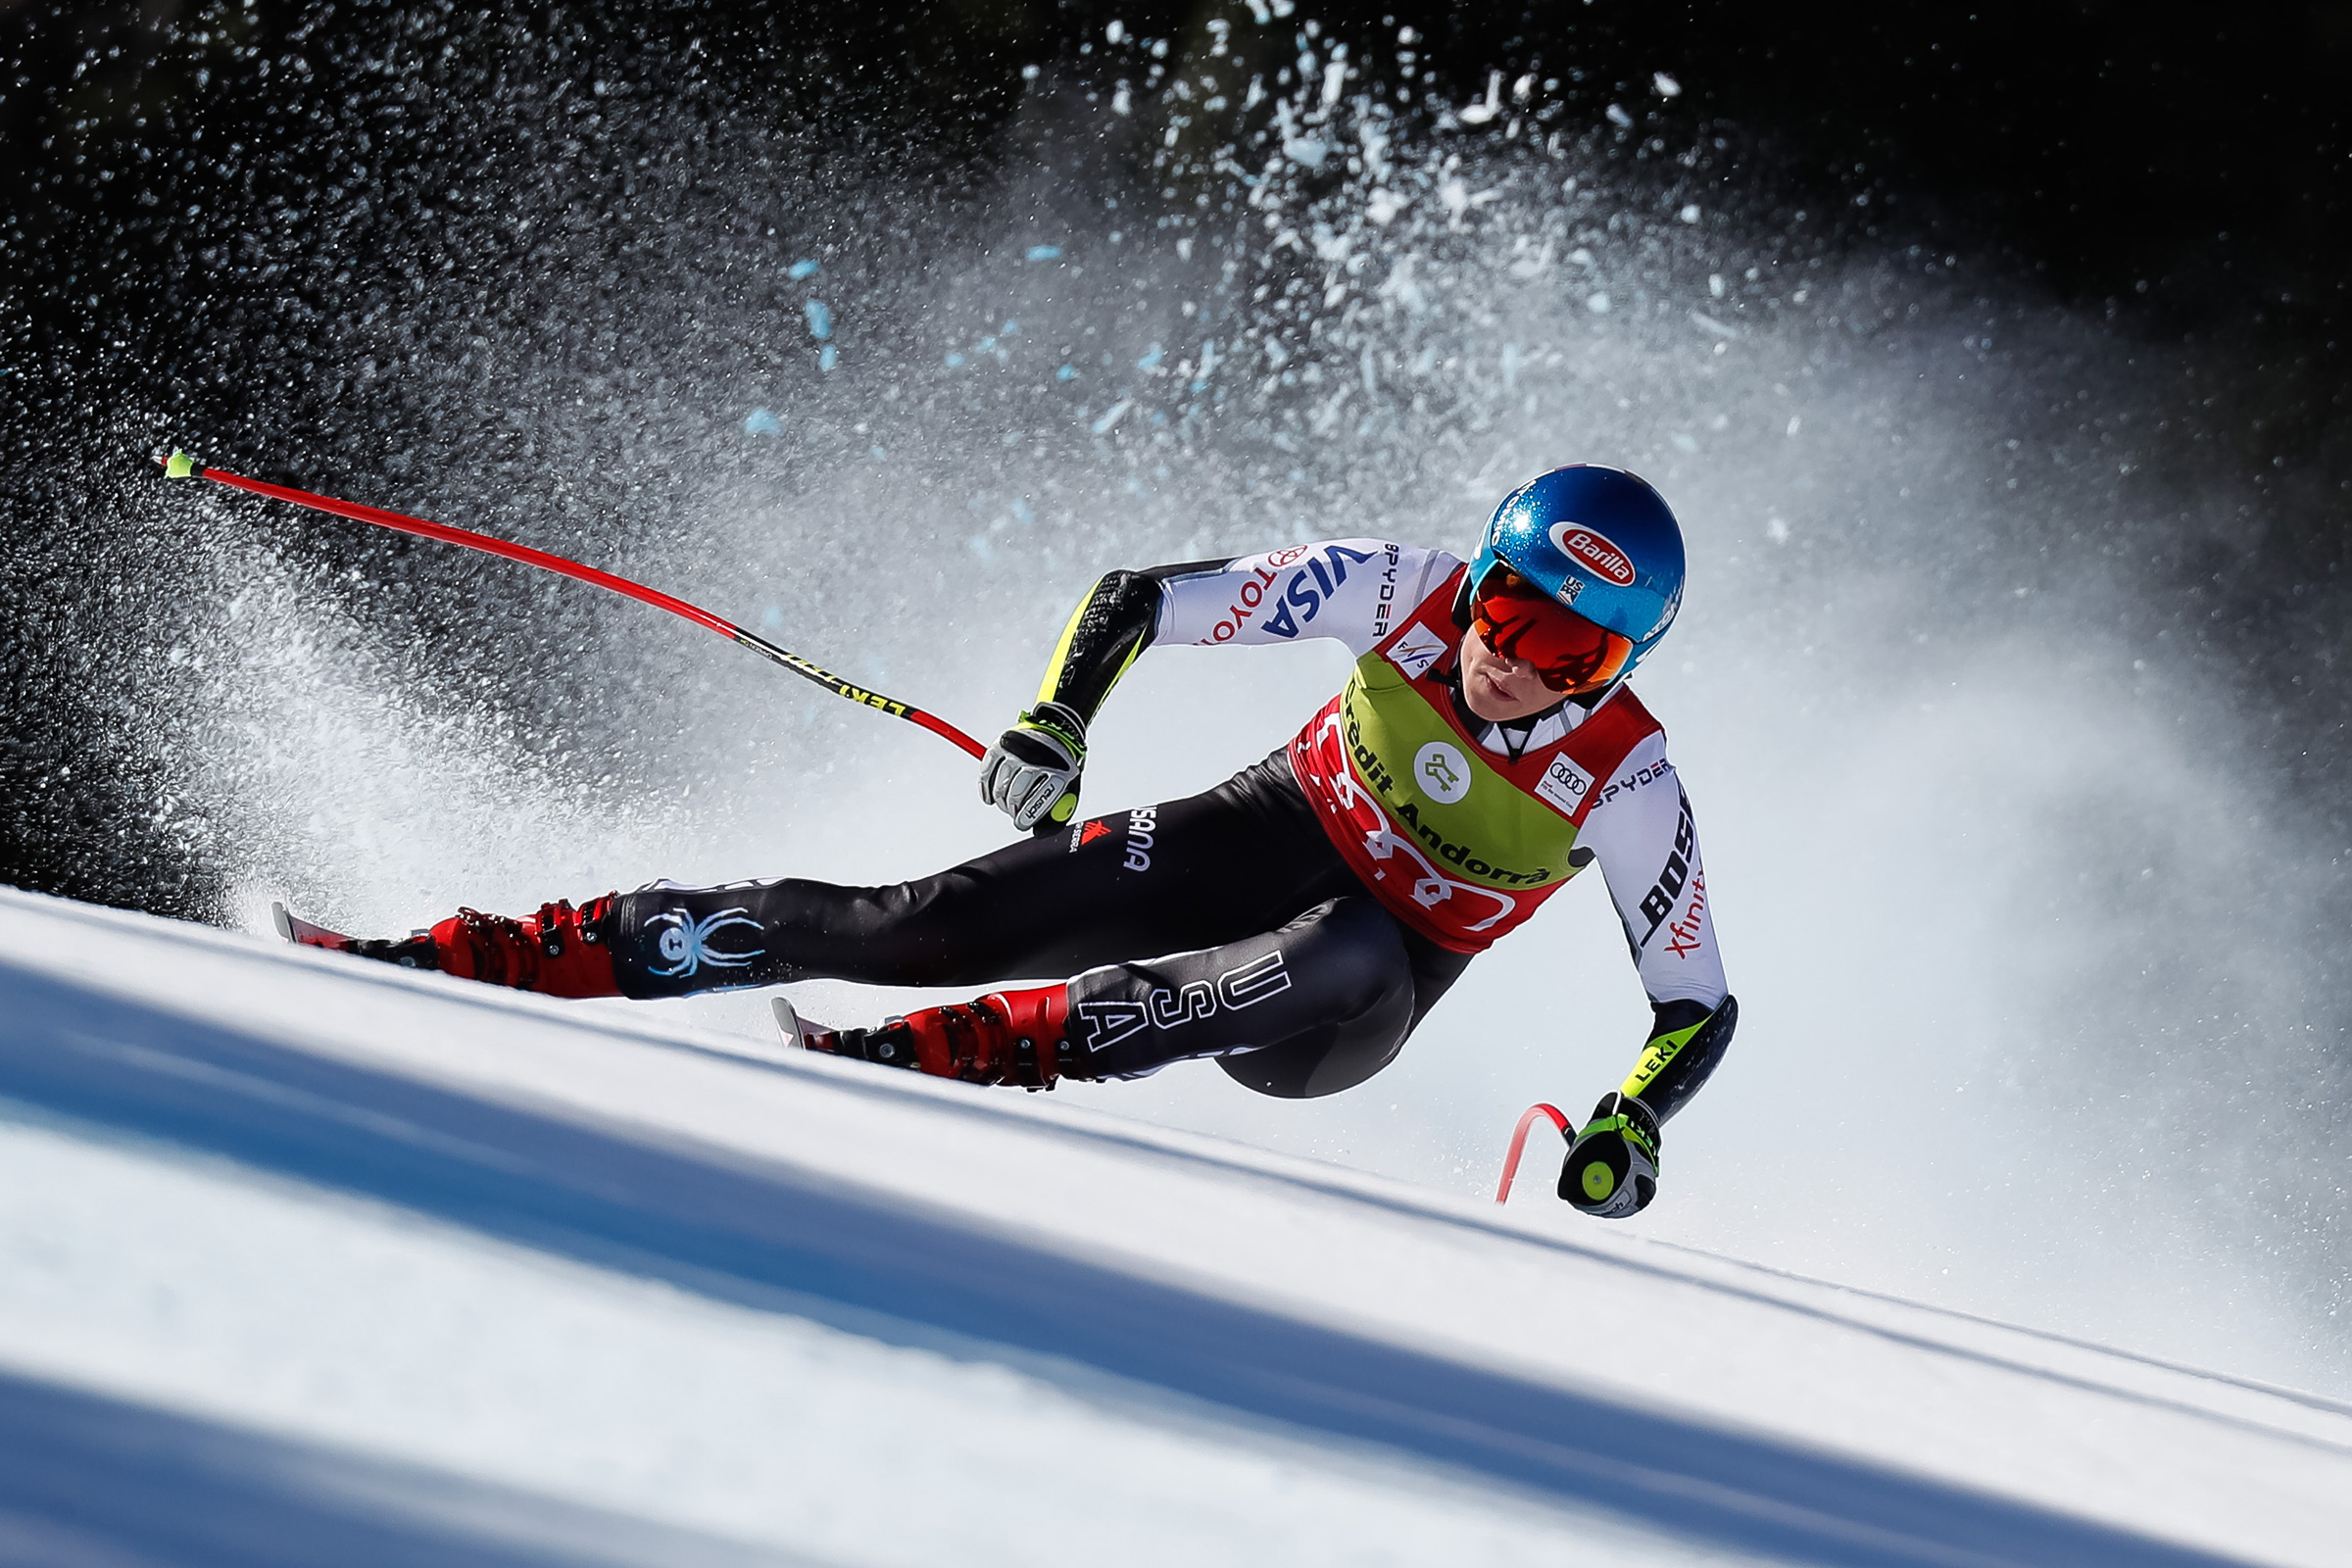 Mikaela Shiffrin of USA competes during the Audi FIS Alpine Ski World Cup Men's and Women's Super G in Soldeu Andorra on March 14, 2019.